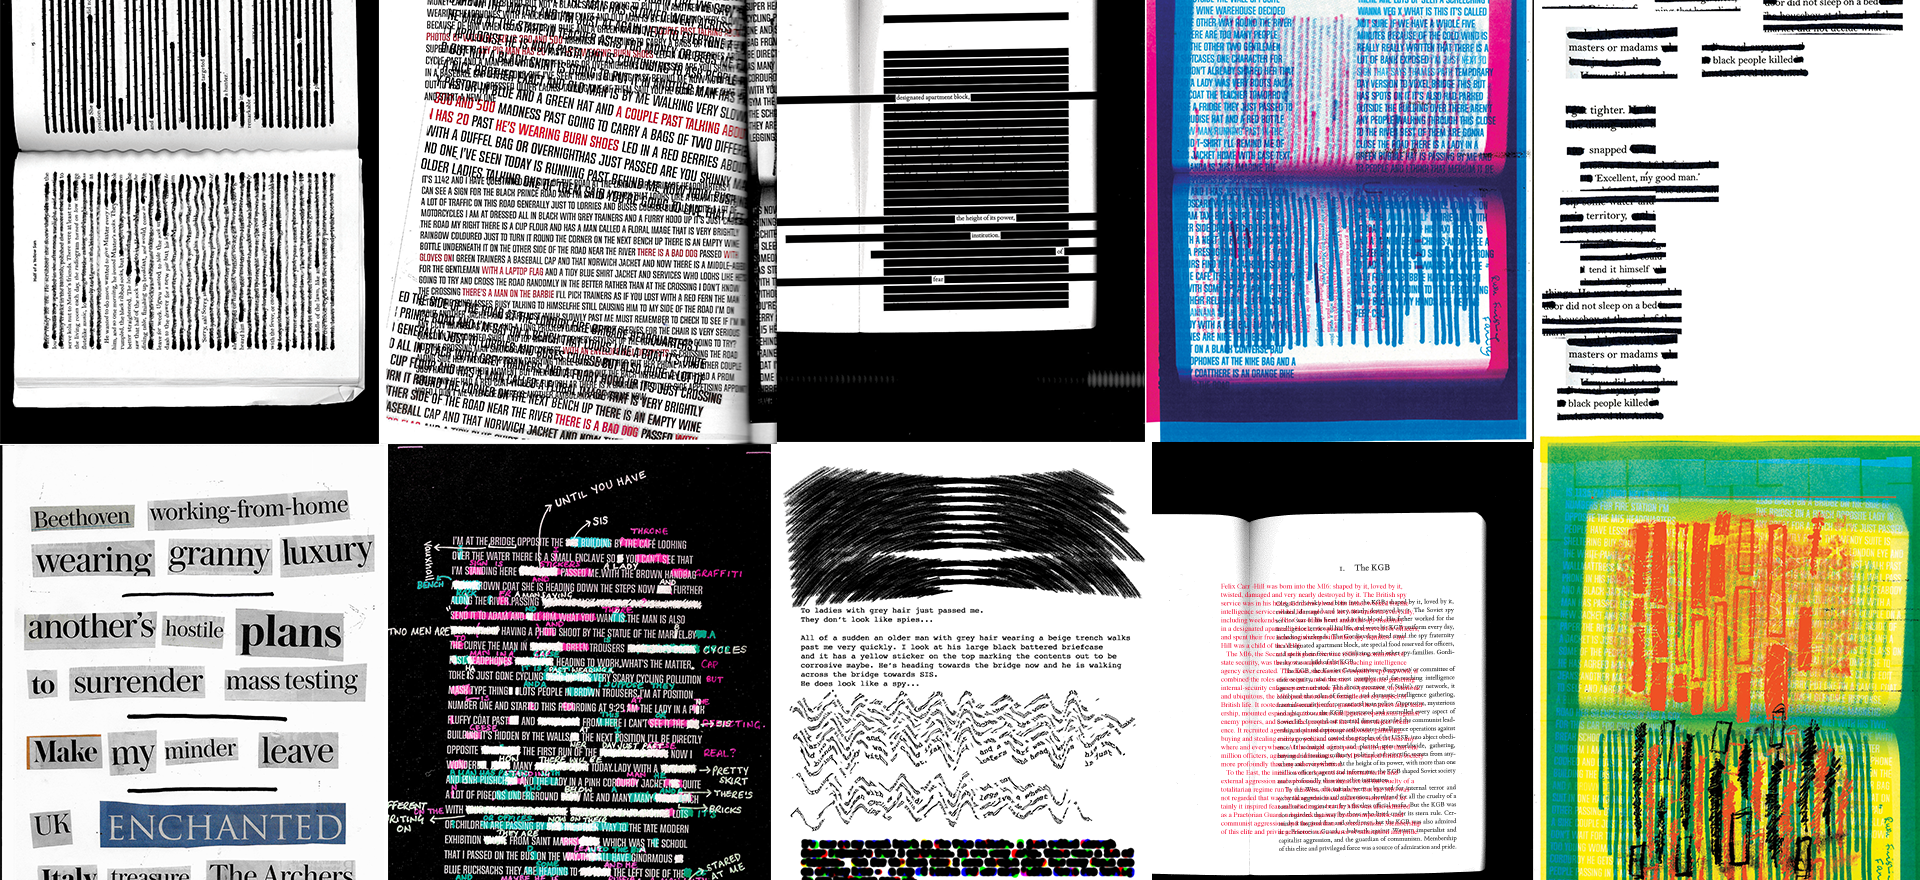 Various analog and digital redaction experiments